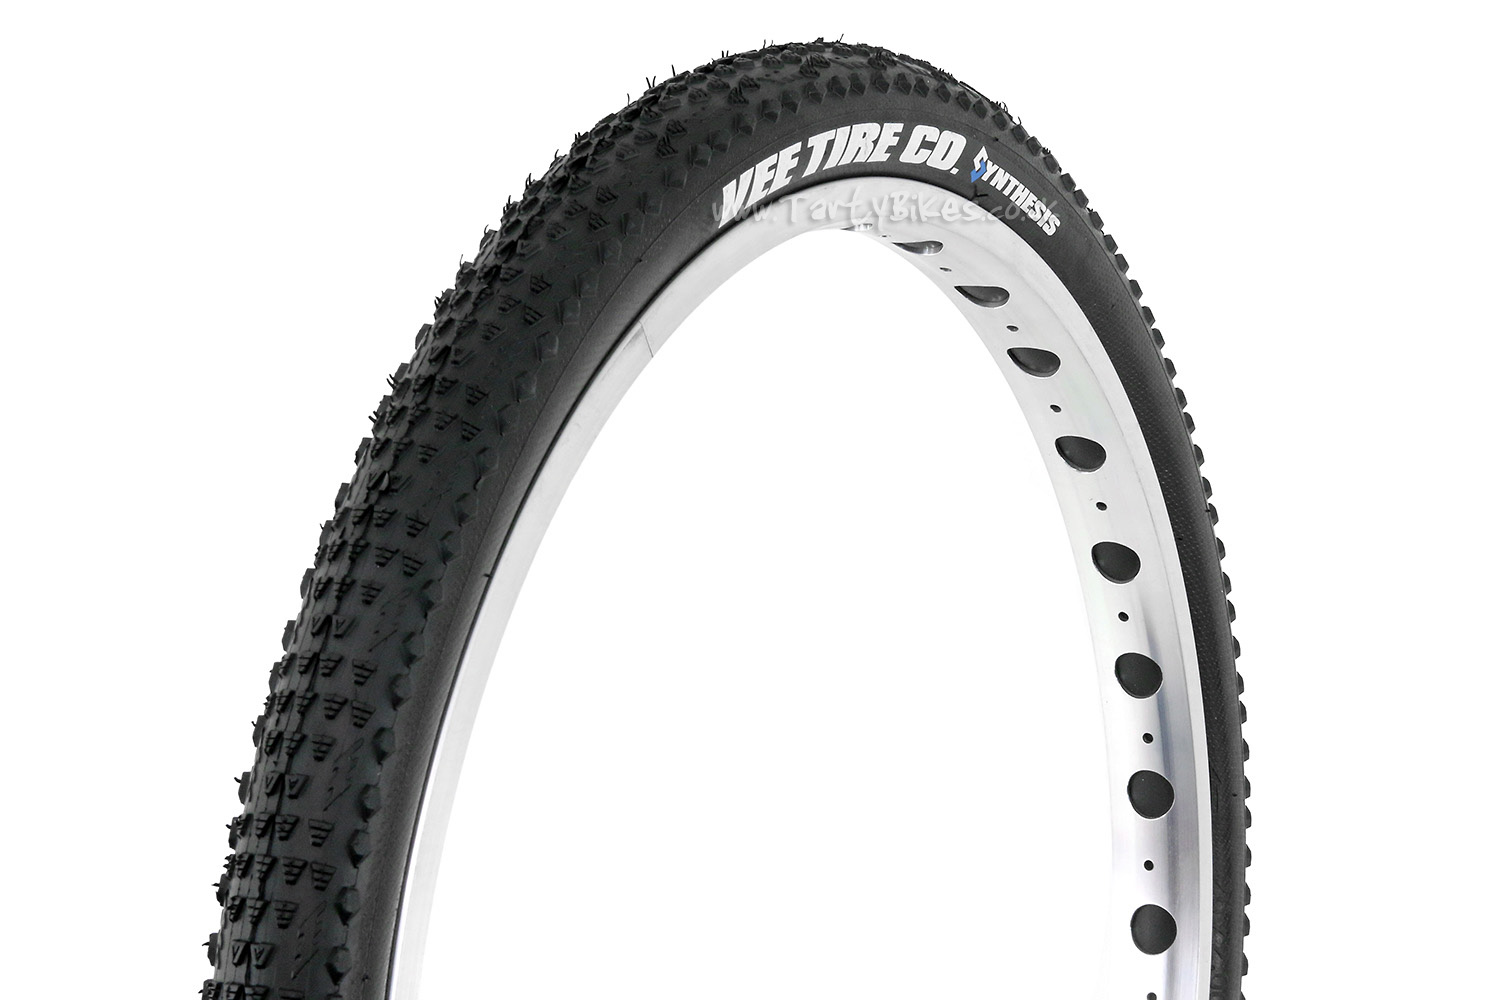 VeeTireCo National WAW Synthesis Edition Front 26""